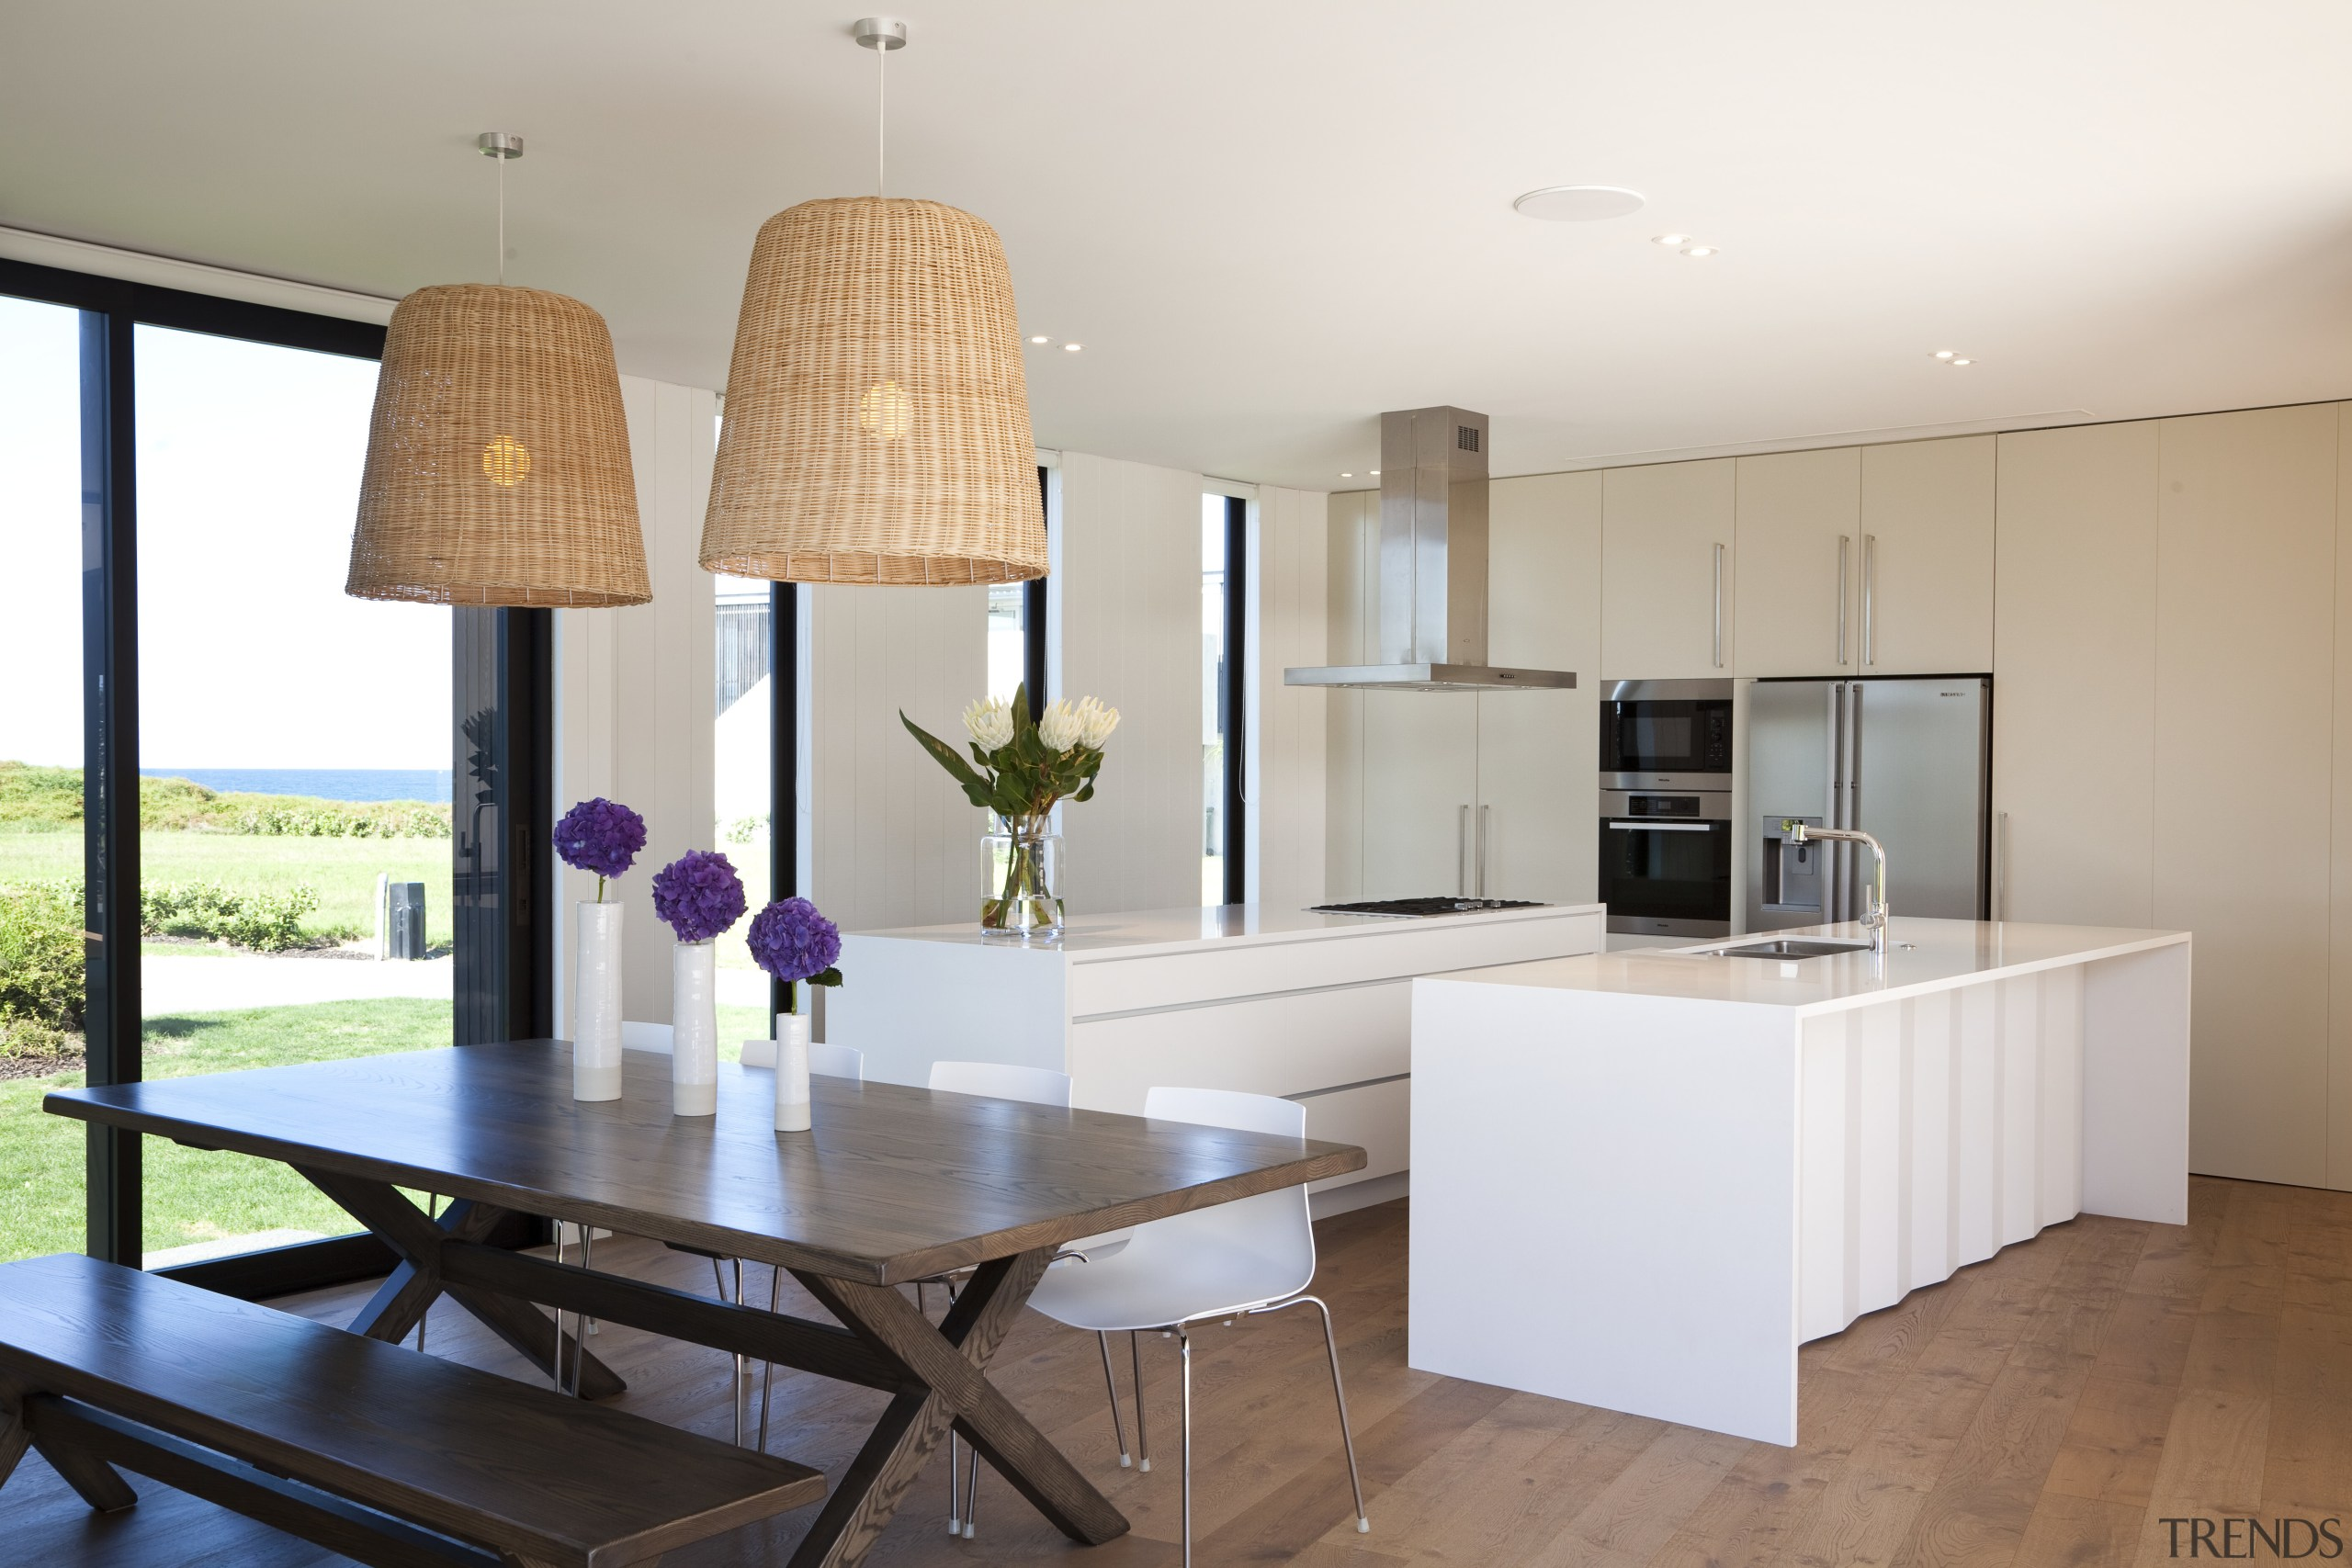 Ponting Fitzgerald-designed beach house - Ponting Fitzgerald-designed beach architecture, countertop, interior design, kitchen, property, real estate, room, table, white